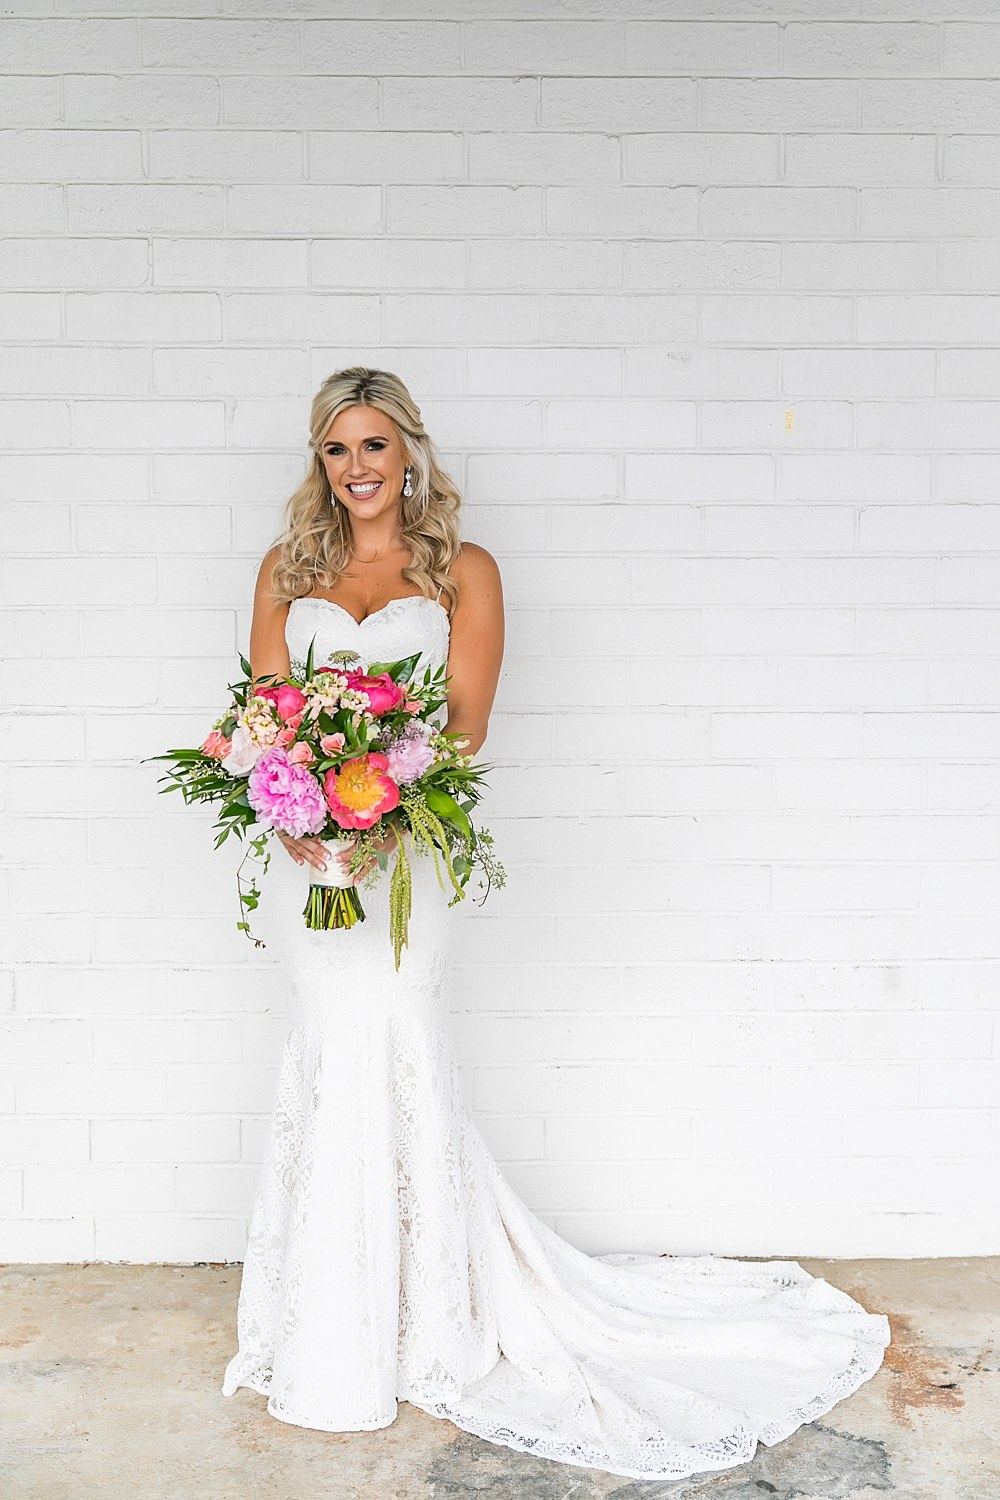 stave room wedding : l events : vue photography 0028